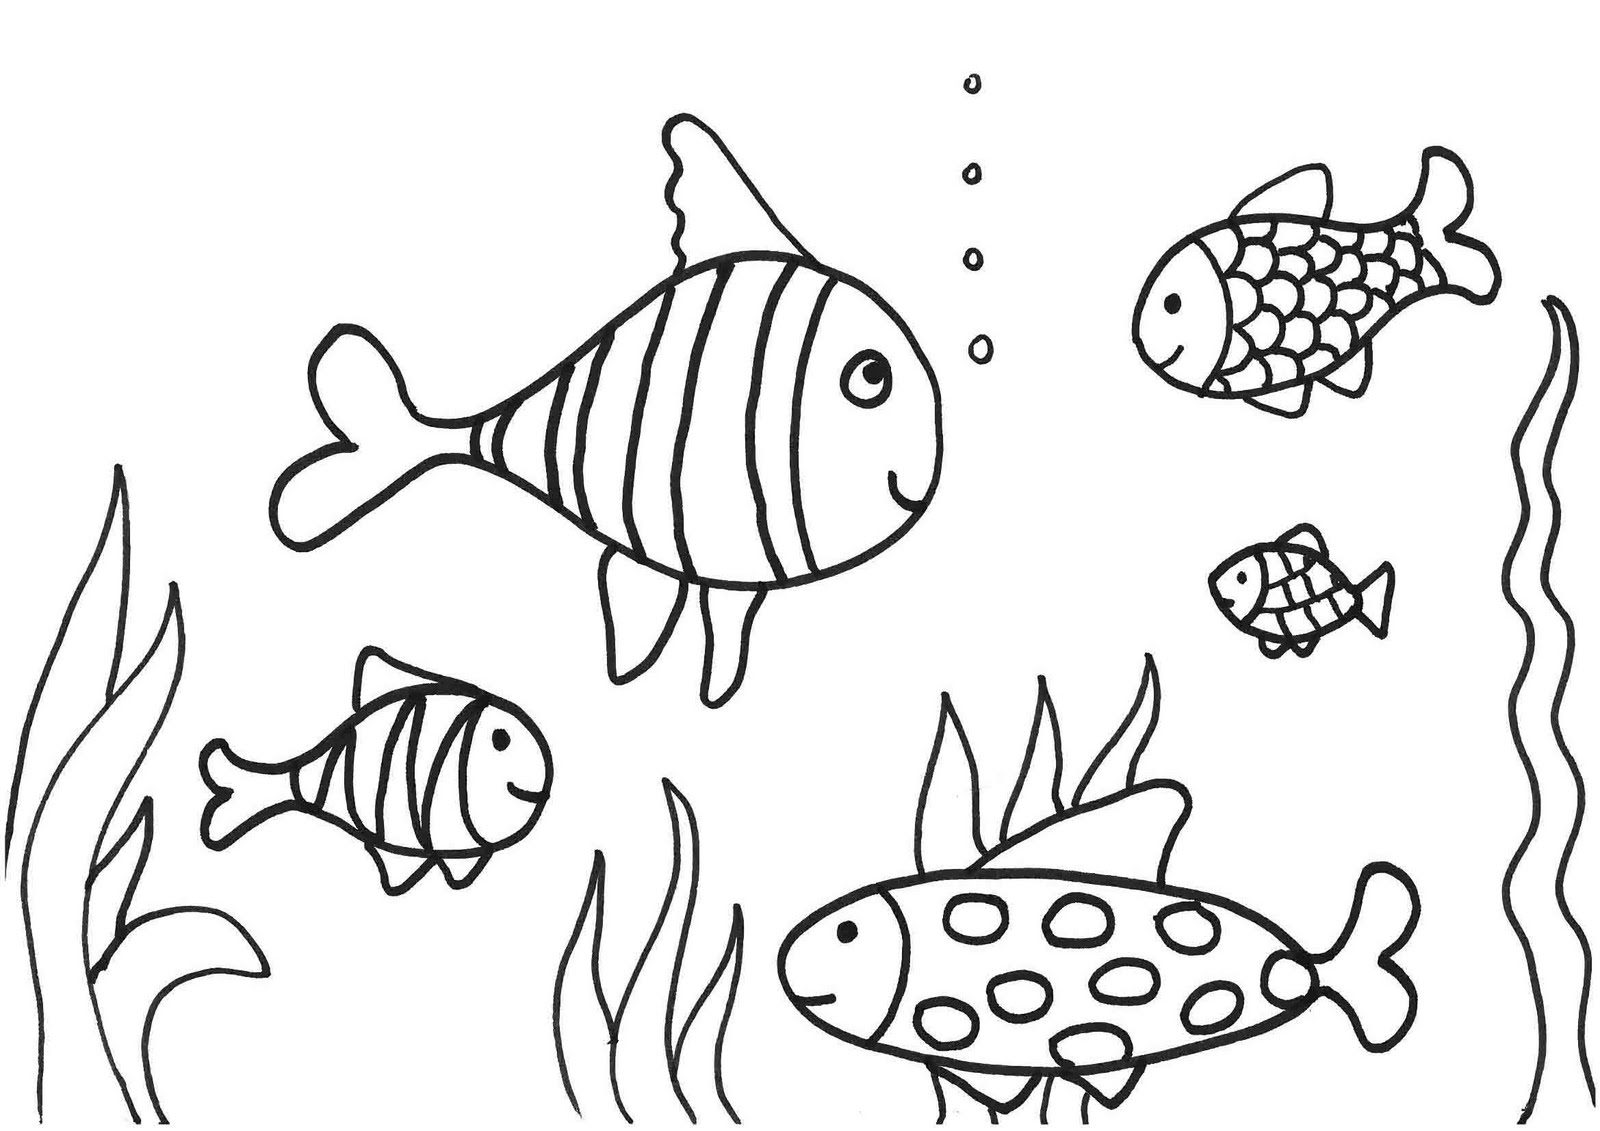 1600x1131 Pepperidge Farm Goldfish Coloring Pages And Various Fish For Kids